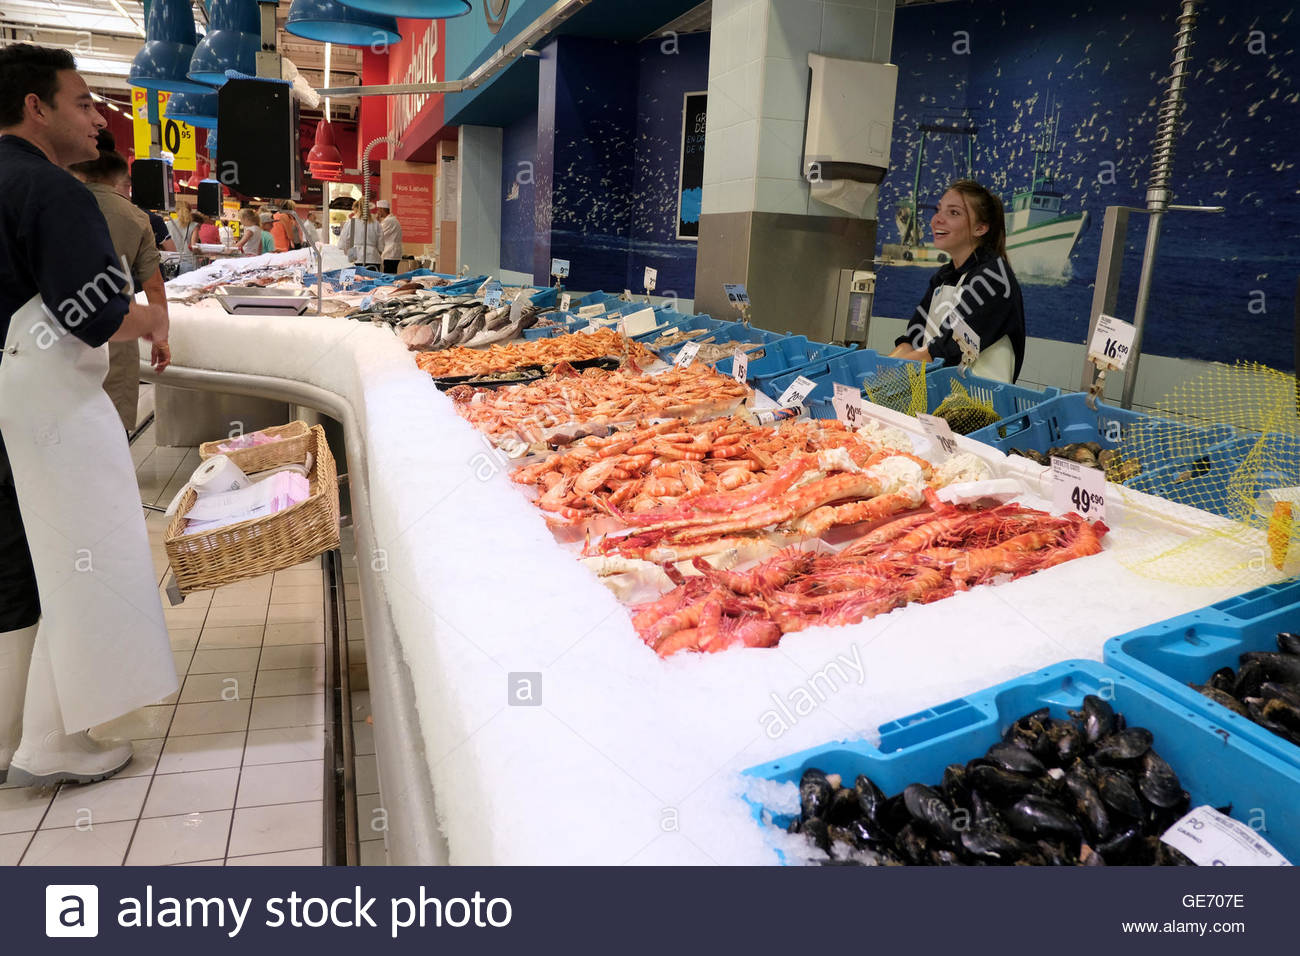 A frsh fish food counter in a French supermarket with a large display of shell fish - Stock Image